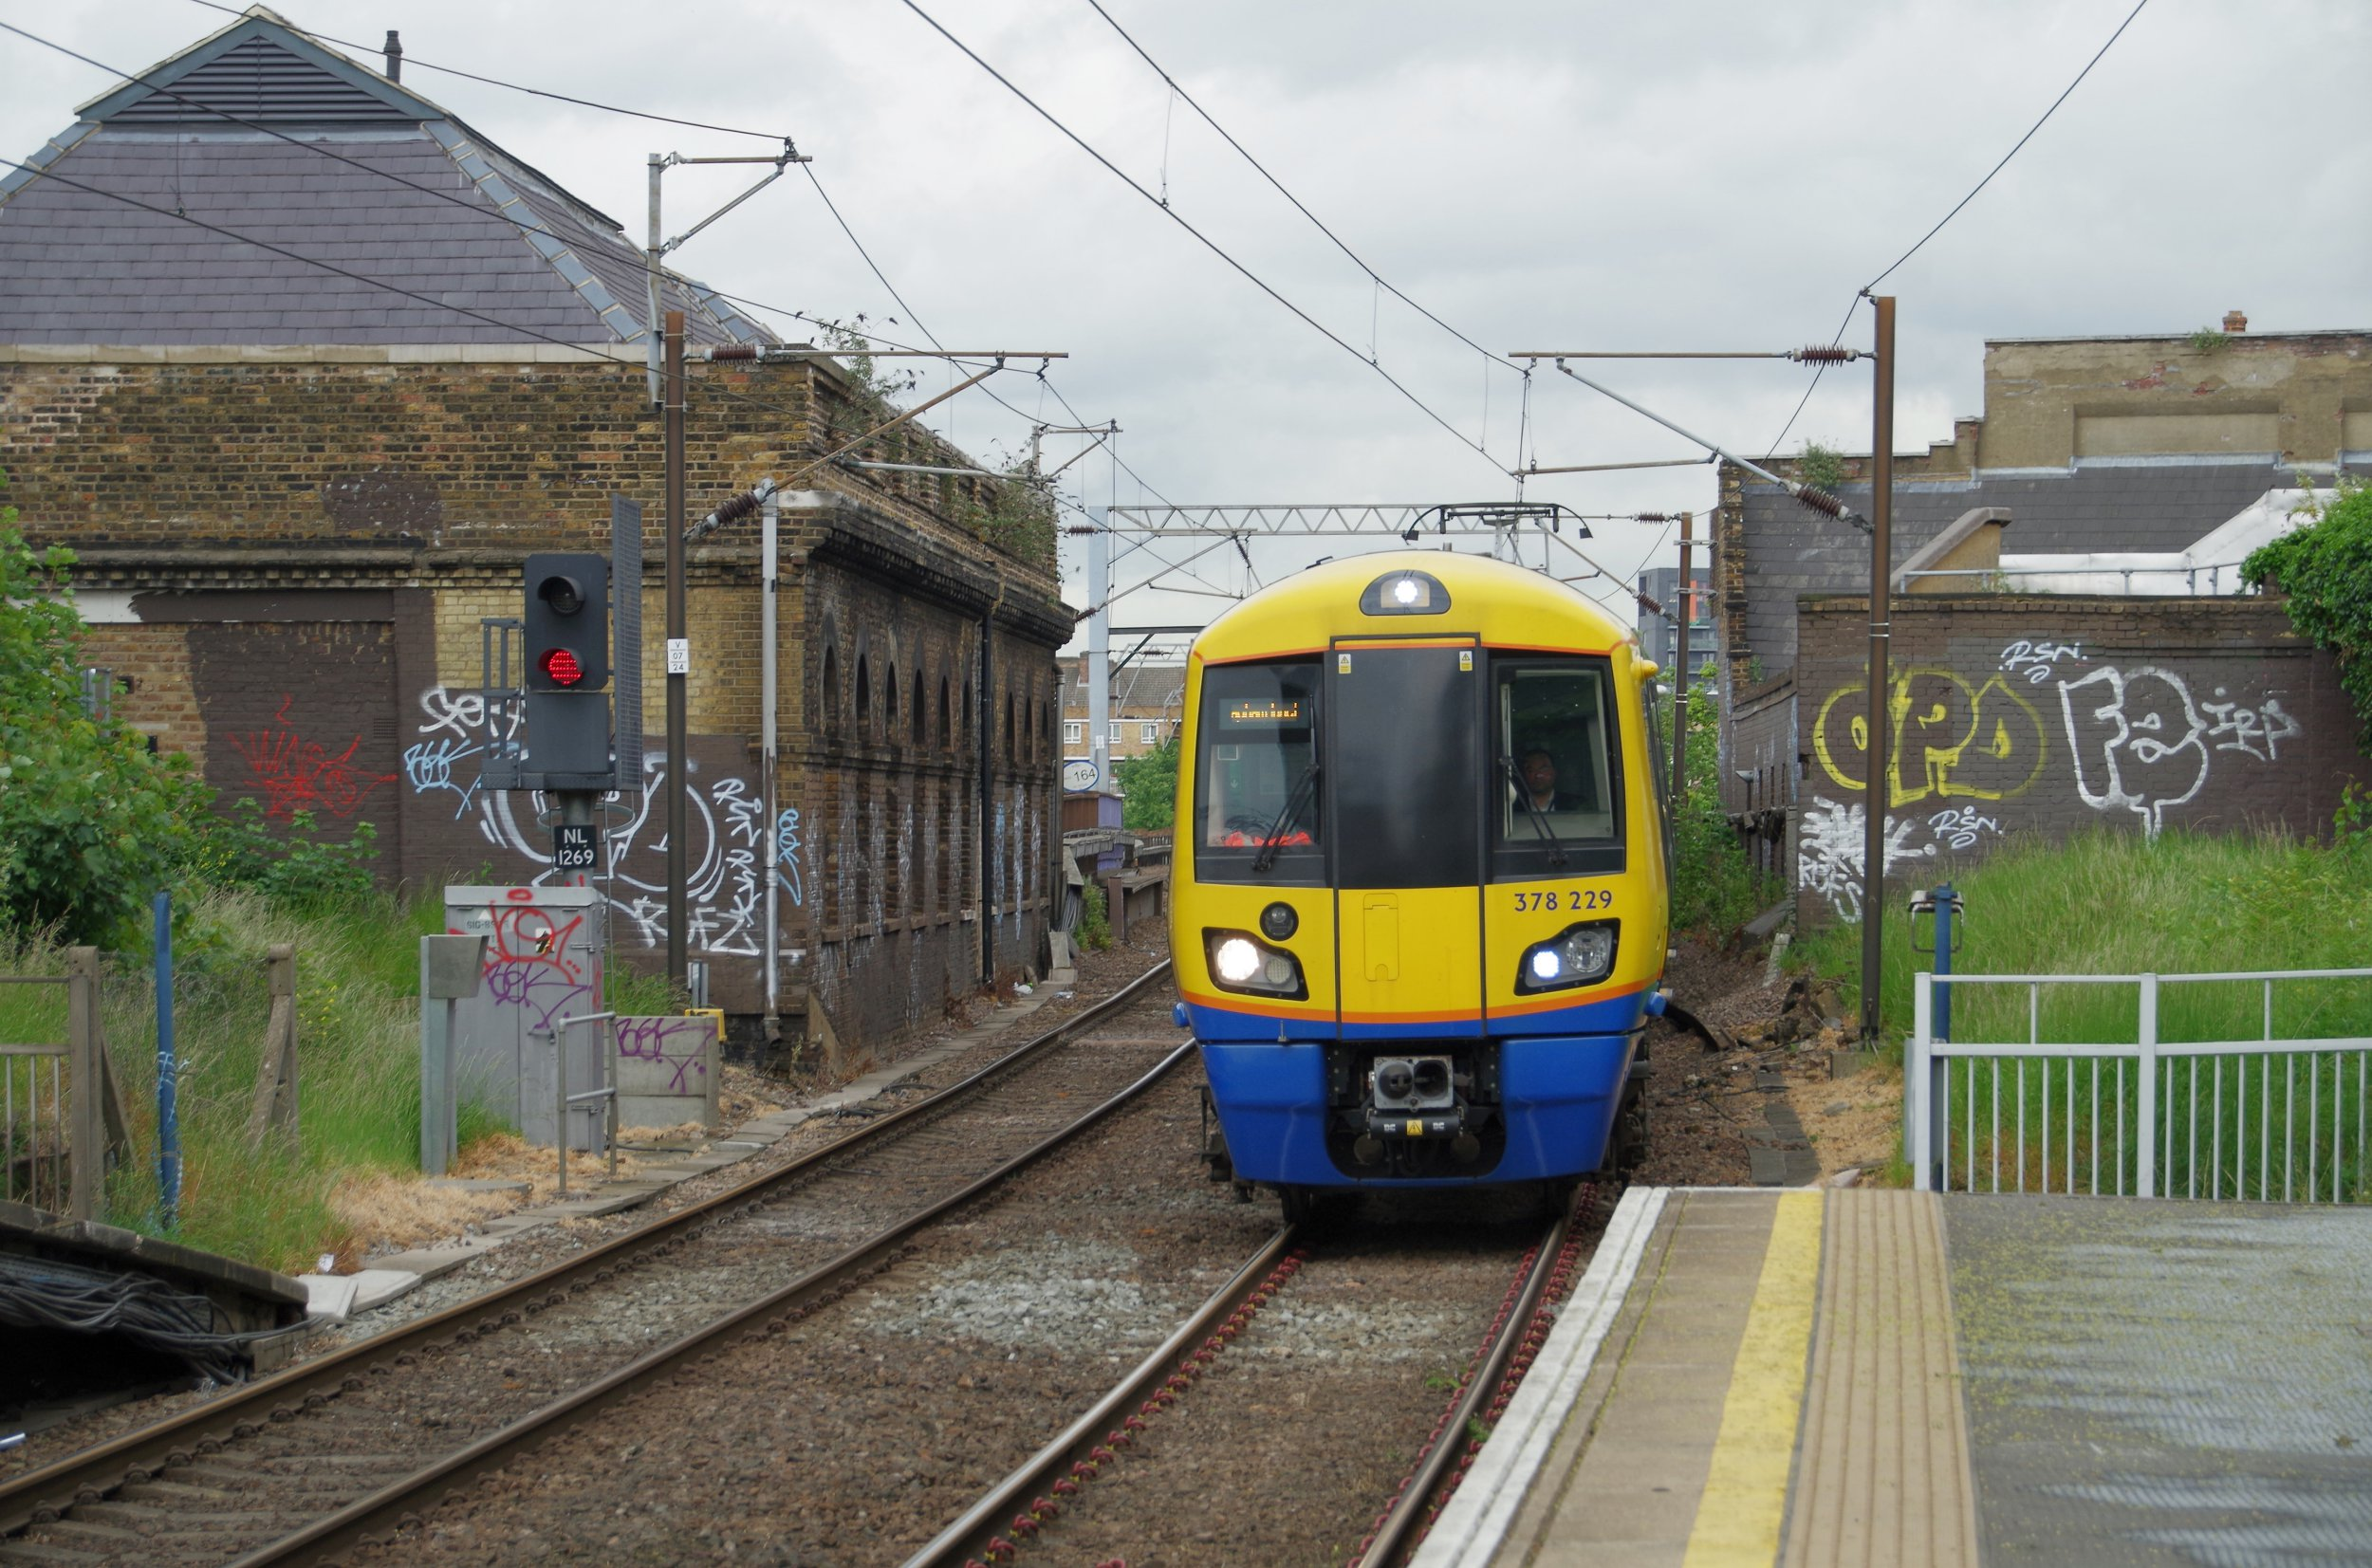 "London Overground class 378 ""Capitalstar"" EMU 378229 arrives at Hackney Central, working a Stratford to Clapham Junction service."